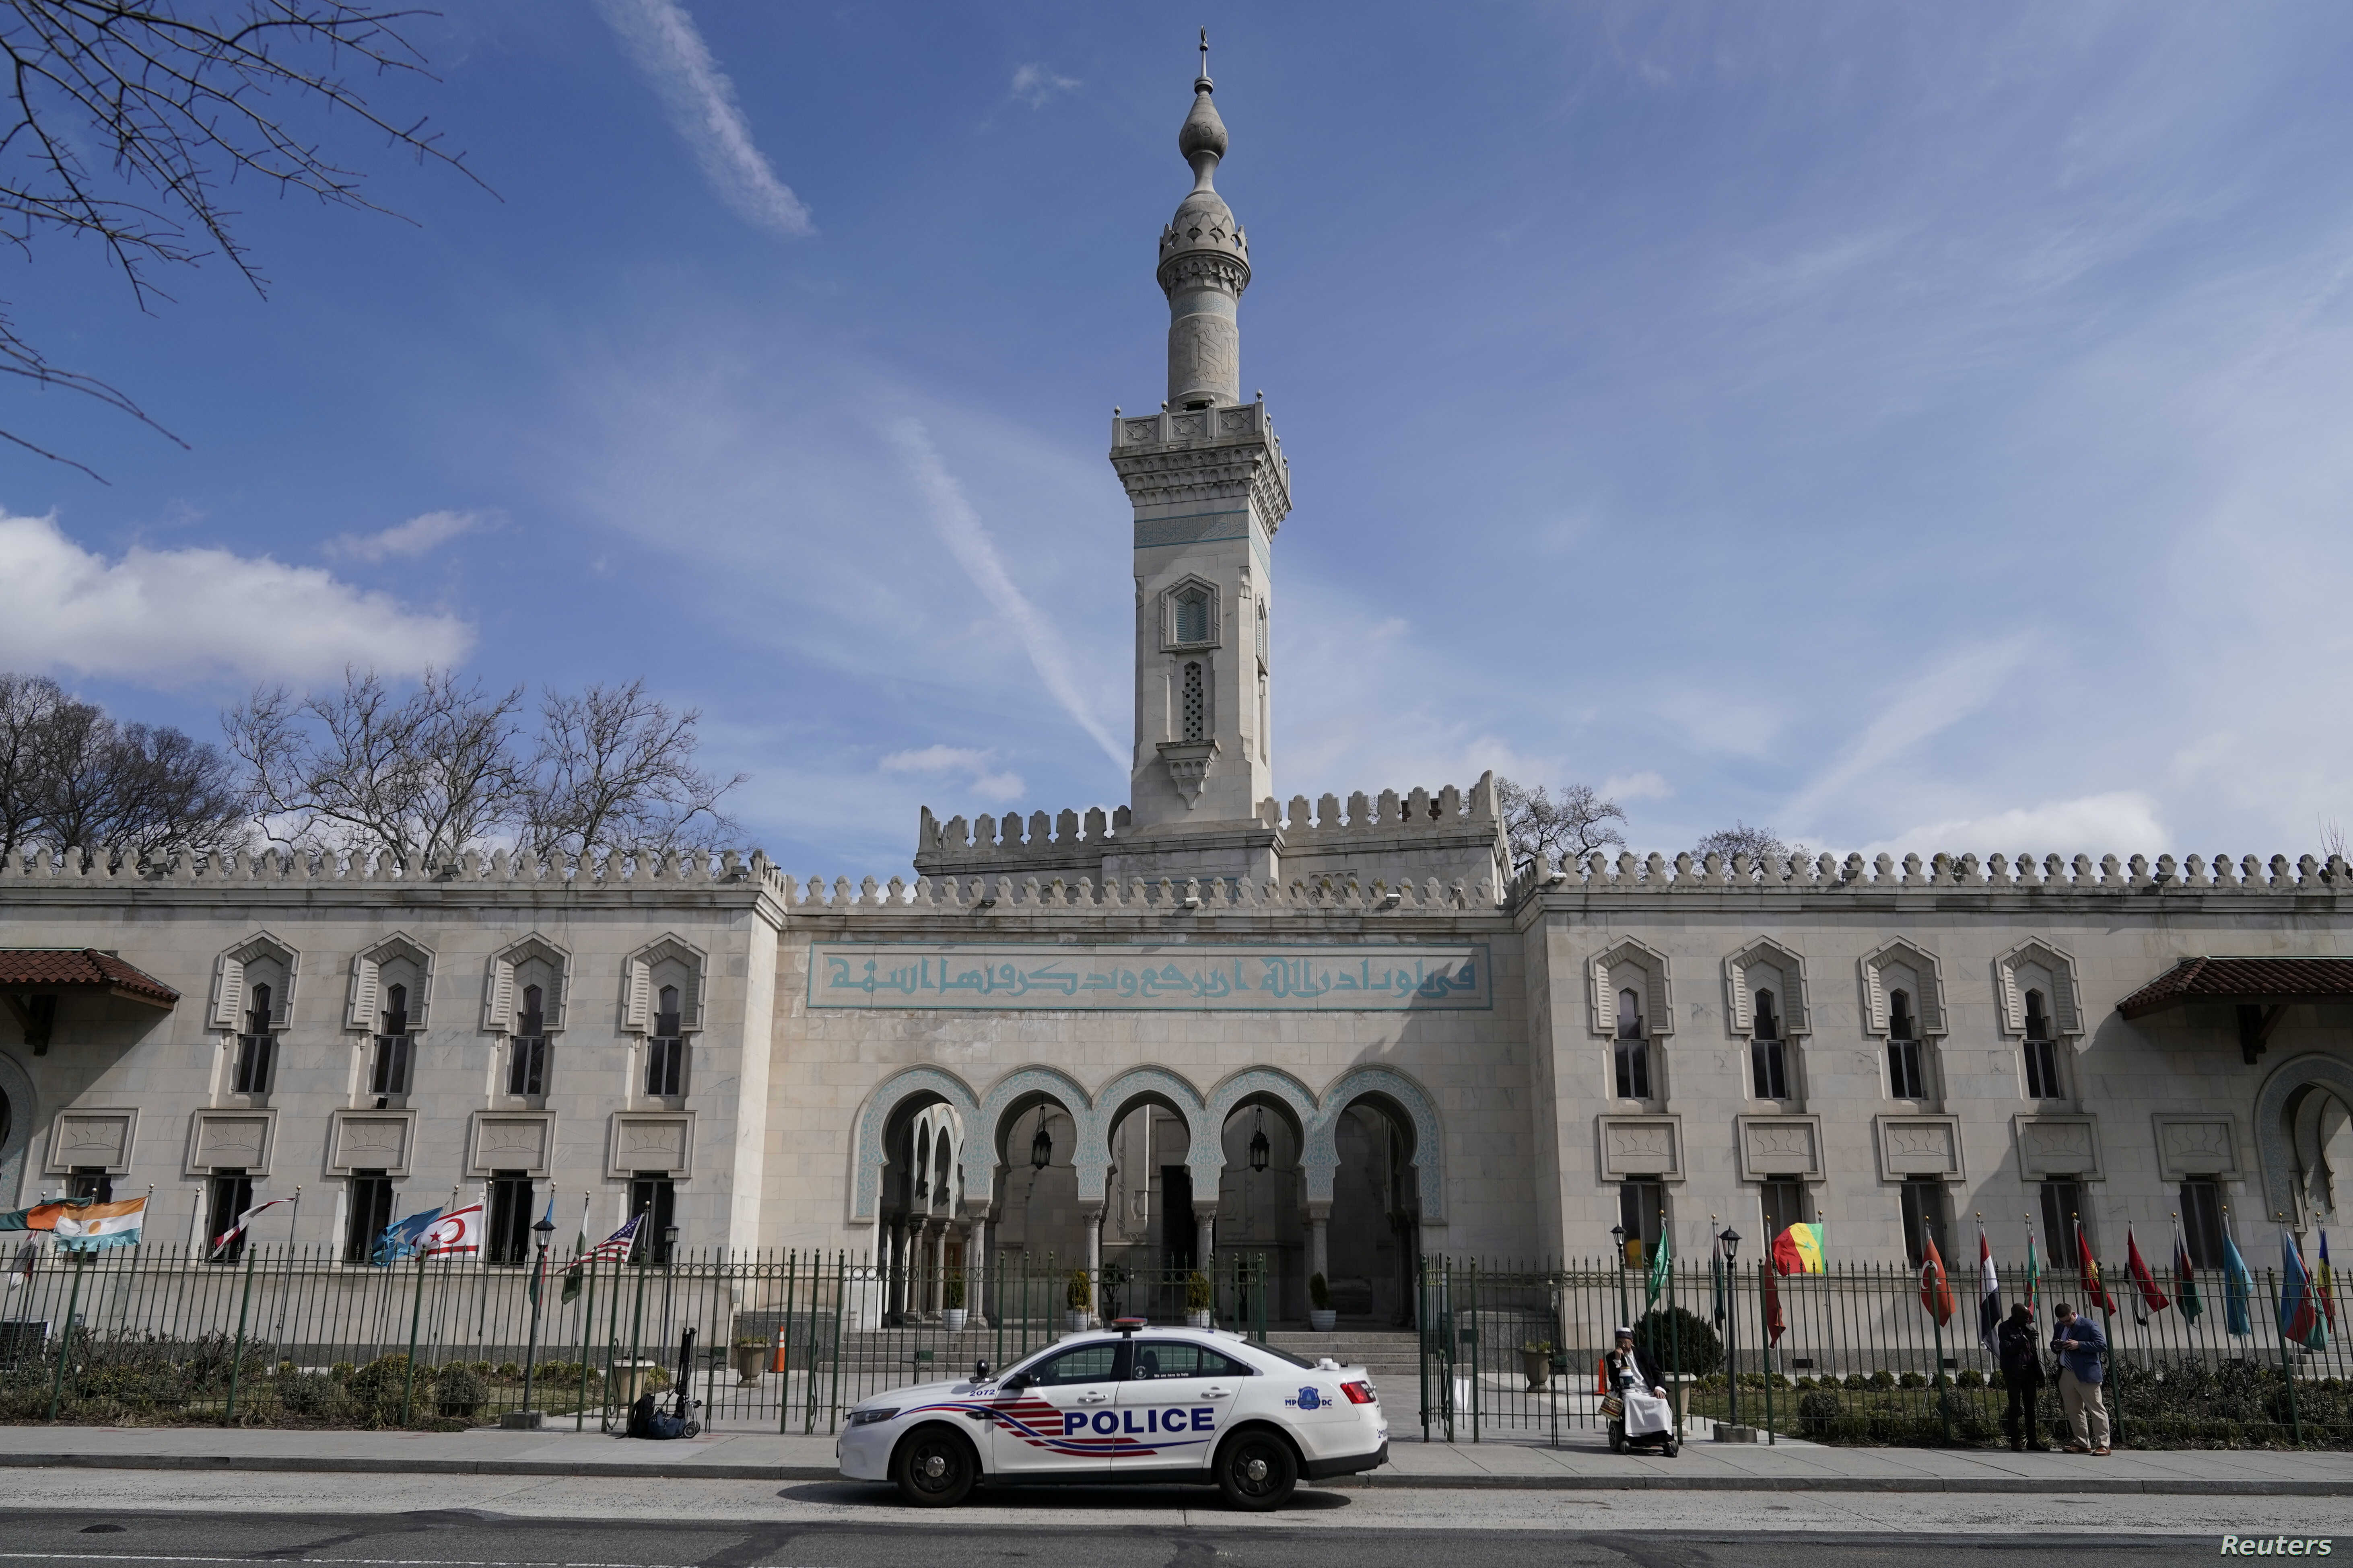 A Metropolitan Police vehicle sits outside of the Islamic Center of Washington in Washington, following the mosque attacks in New Zealand March 15, 2019.